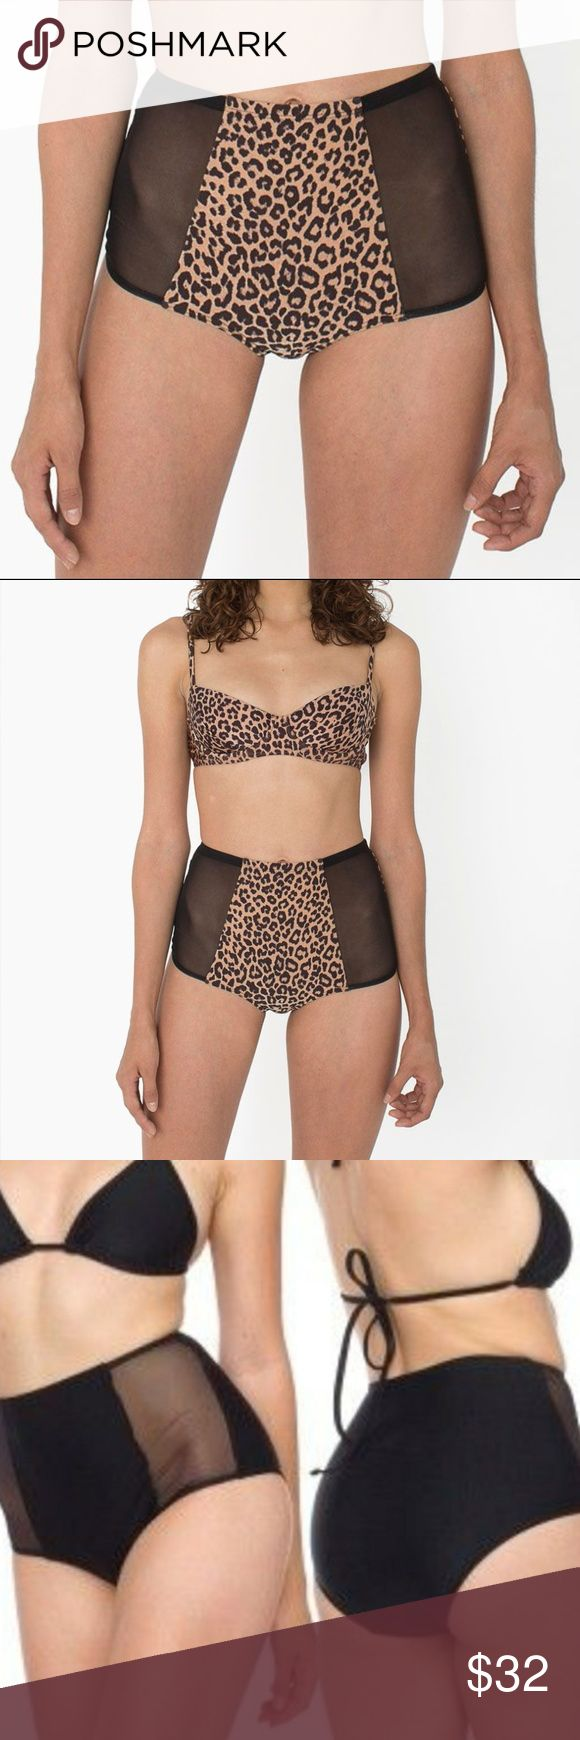 NEW AA Swim Mesh Panel High Waist Bikini Bottoms Perfect AA swim bottoms in a leopard /cheetah / animal print. High waist and lower cut leg openings with sheer accents. The back is solid fabric with no mesh. New in the factory bag. I have red, blue, and black in multiple sizes as well.   Mix and match swim from my closet with no hassle using the Bundle tool- 20% off 2 or more items is applied automatically. American Apparel Swim Bikinis